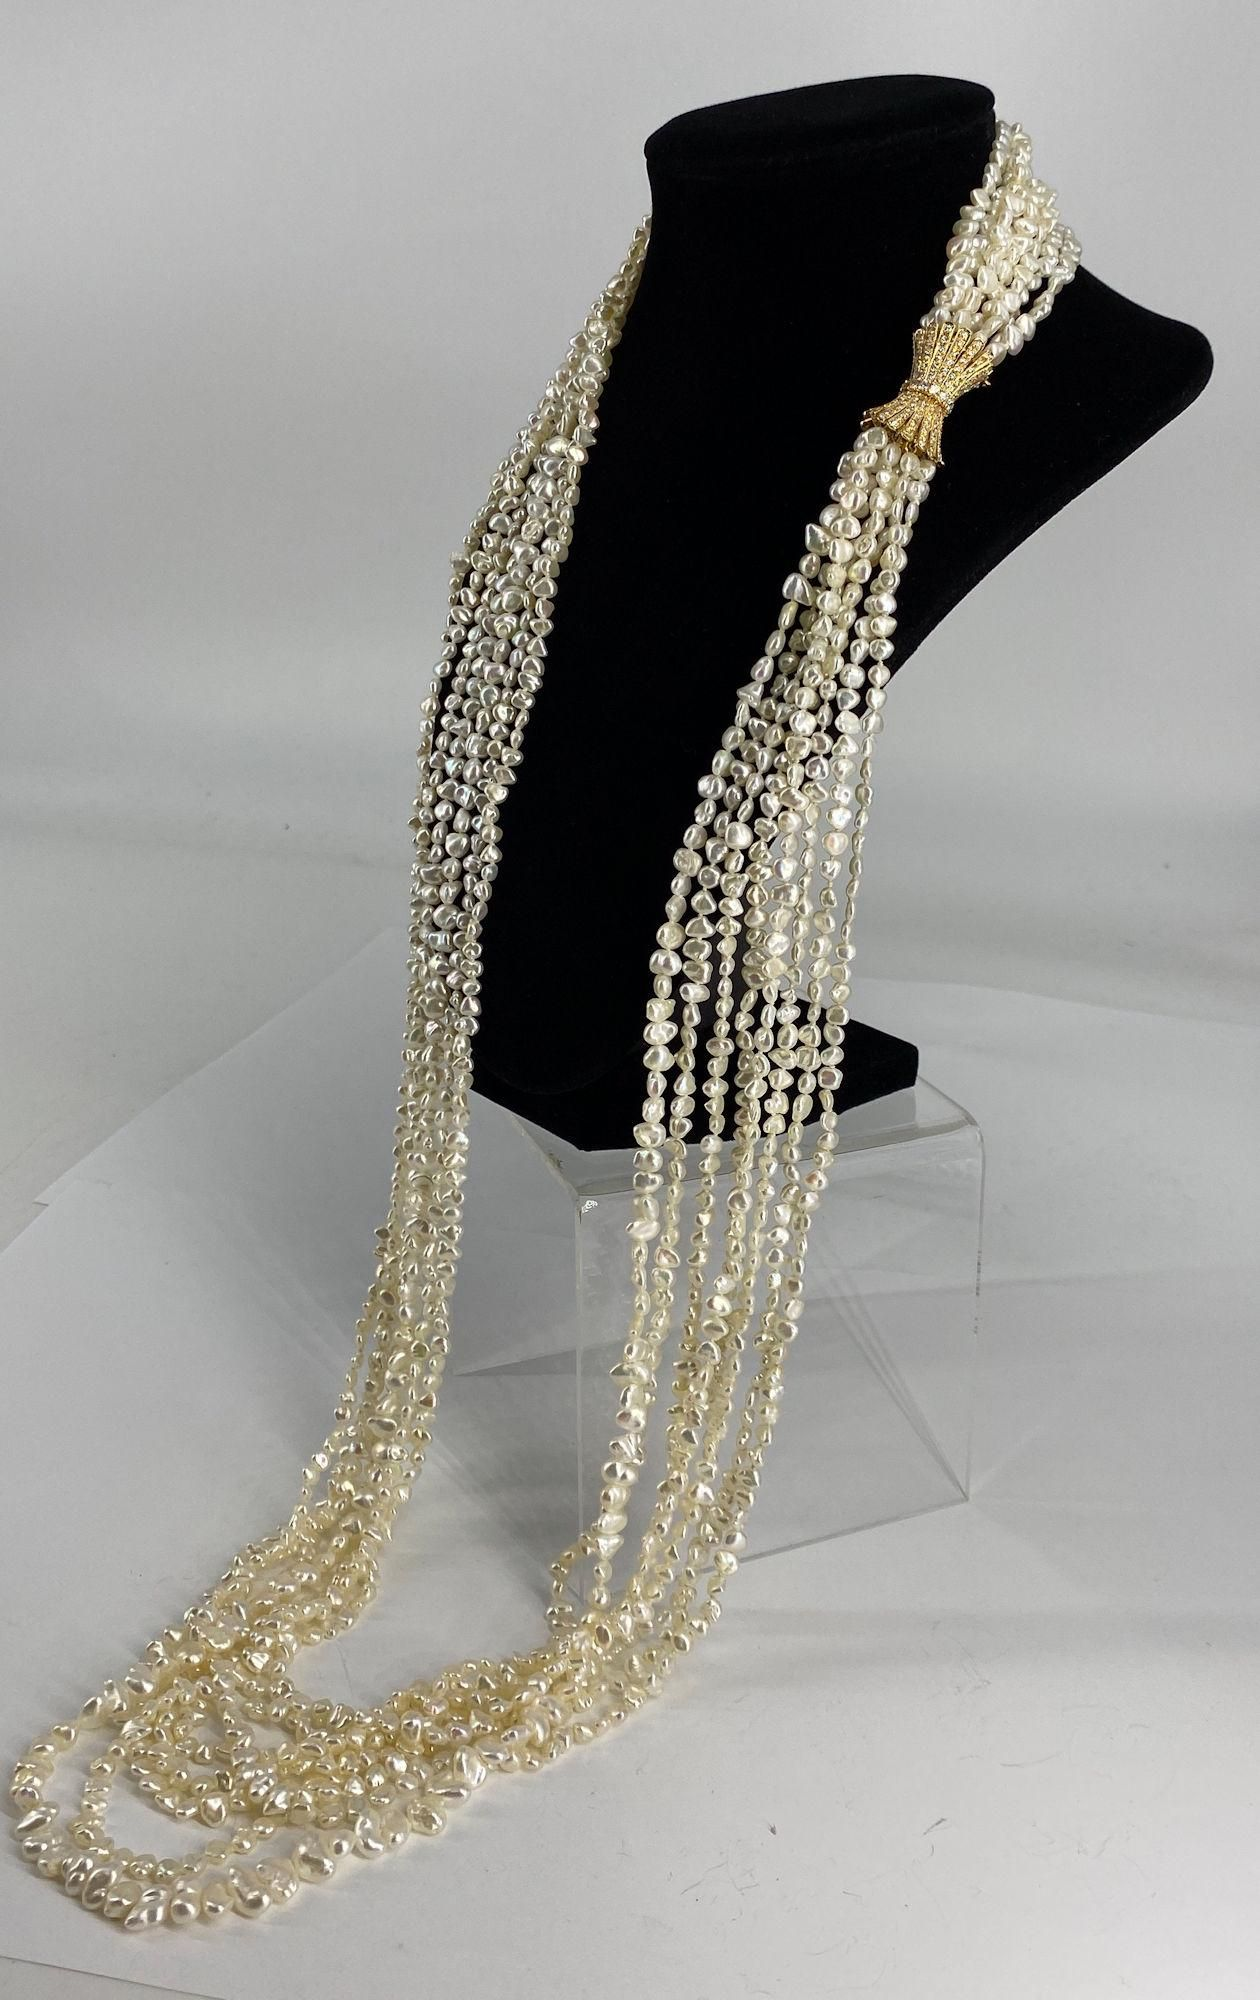 MULTI STRAND PEARL NECKLACE WITH 18KT YELLOW GOLD AND